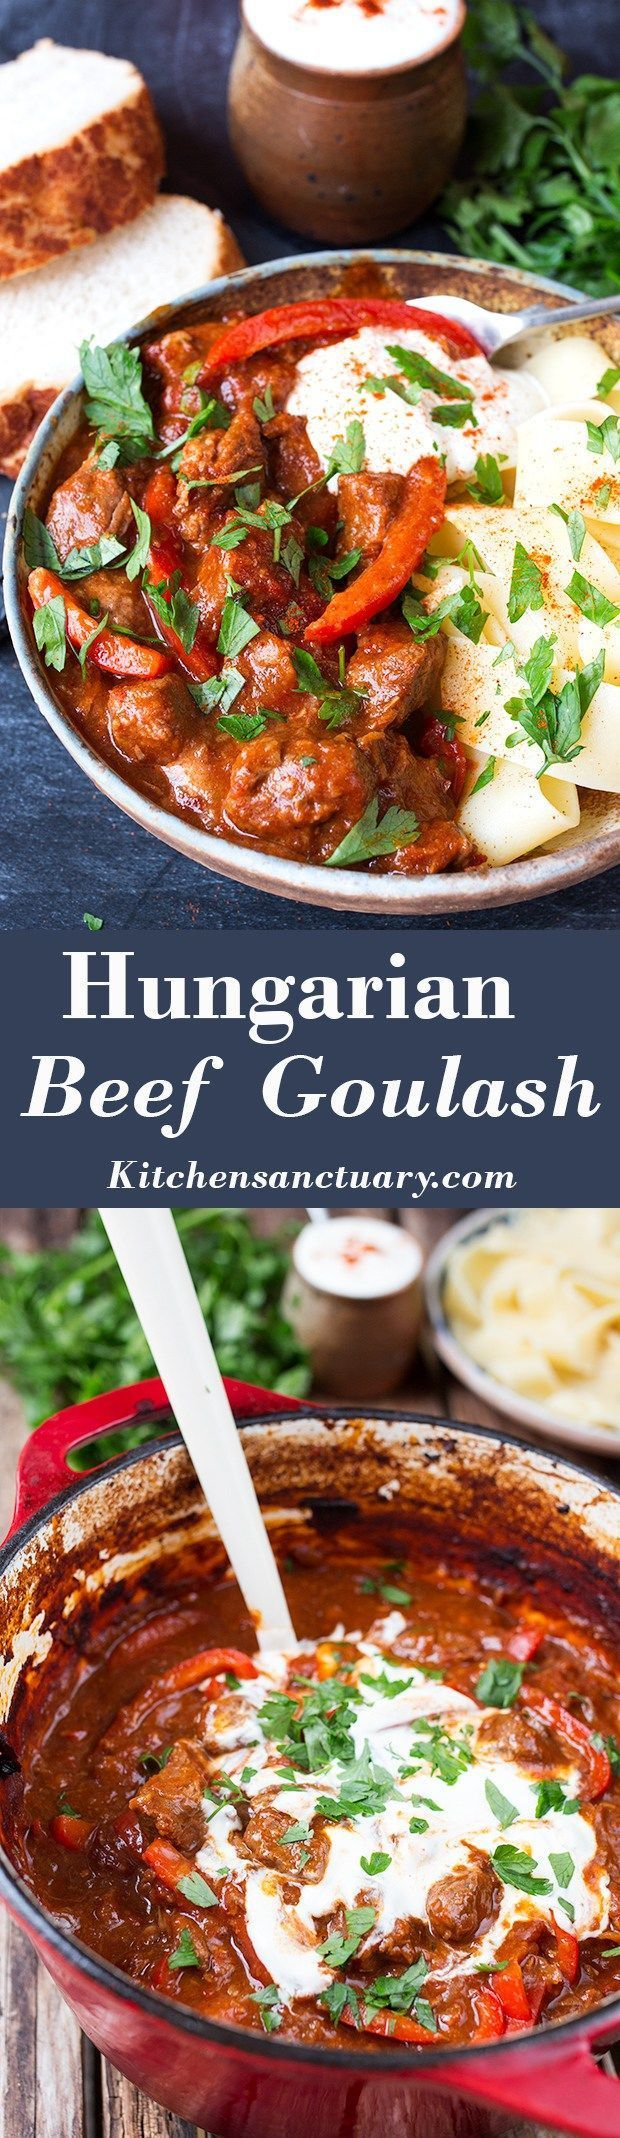 Served with spaghetti squash noodles or zoodles...Slow-Cooked Hungarian Beef Goulash - A thick and hearty, paprika spiced stew.